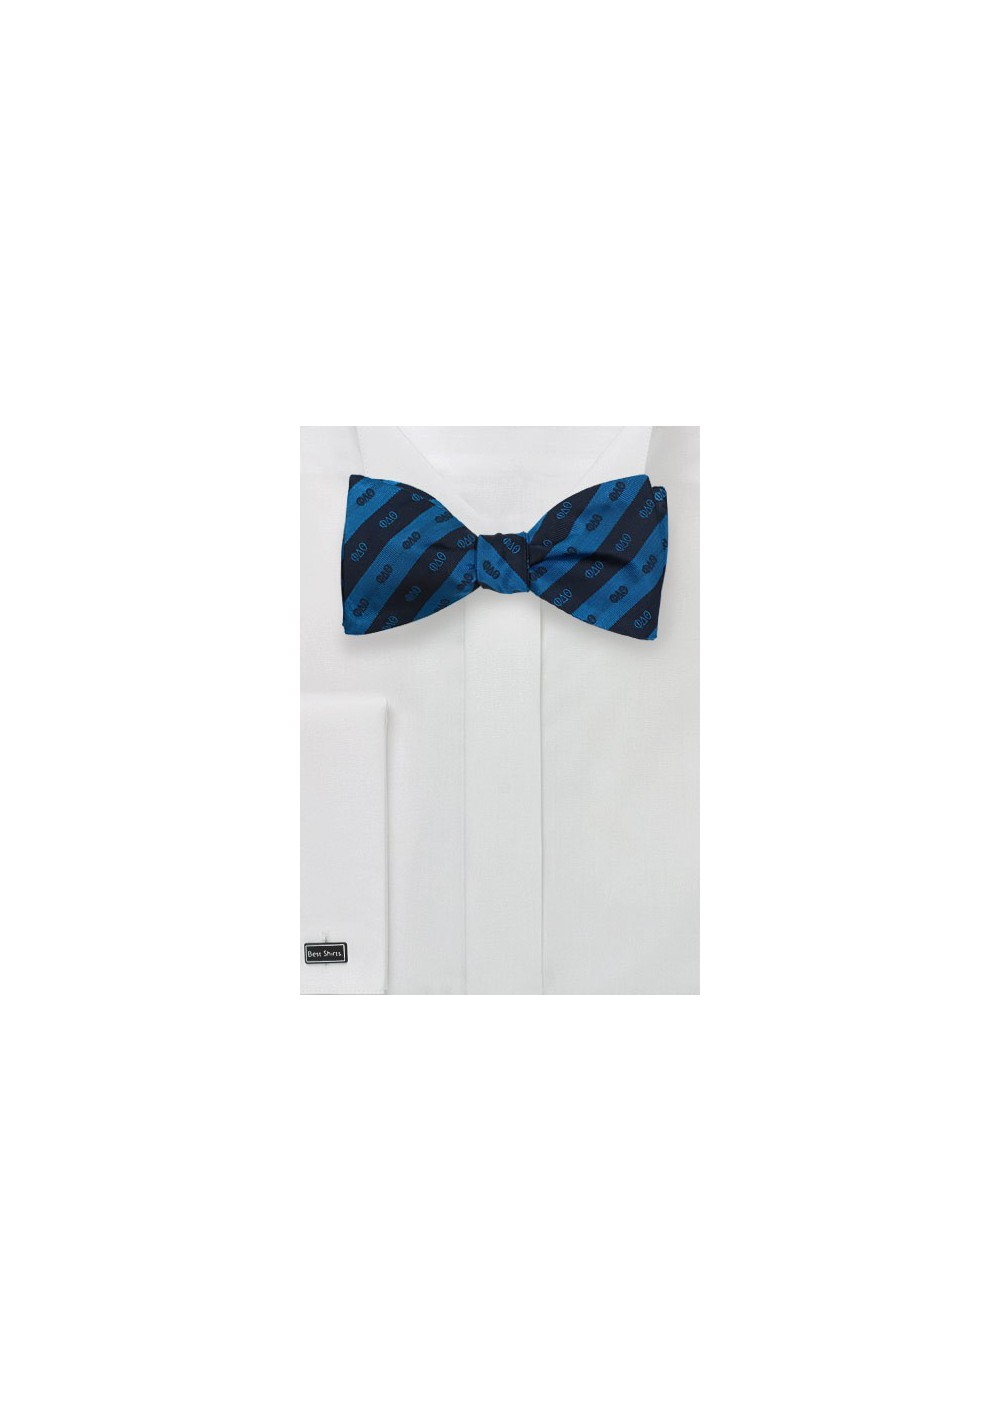 Self Tie Silk Bow Tie for Phi Delta Theta